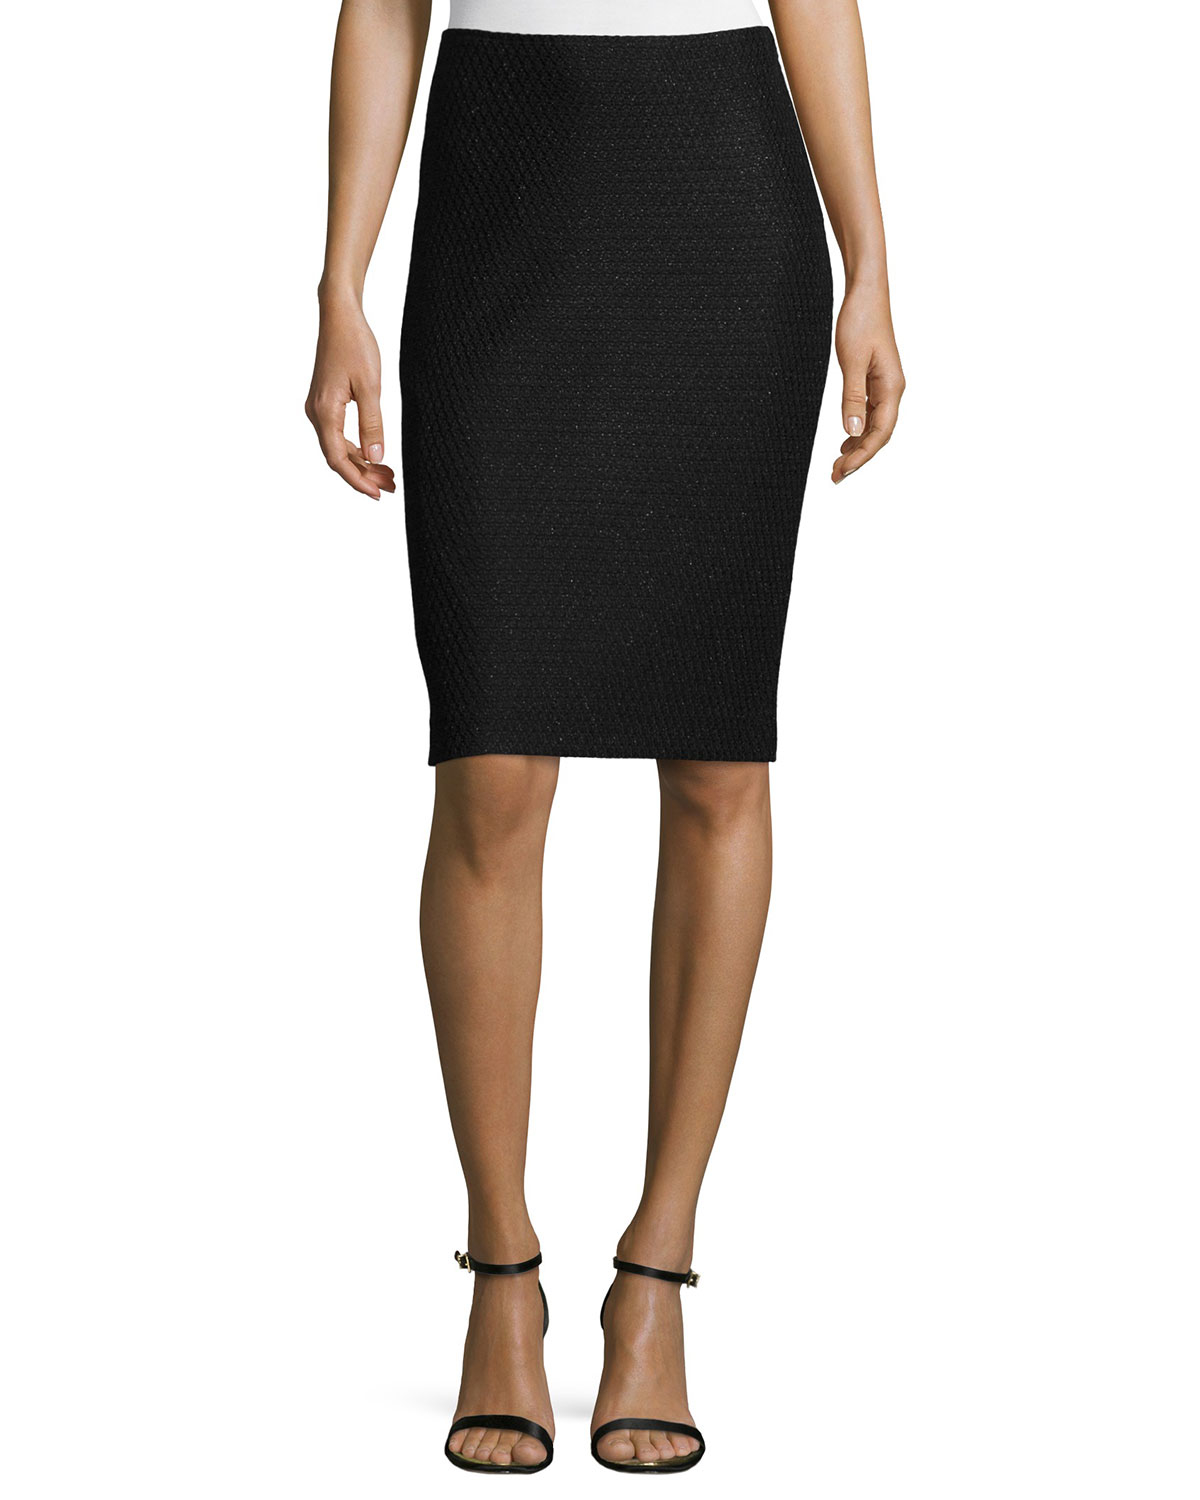 st speckled knit pencil skirt in black save 55 lyst